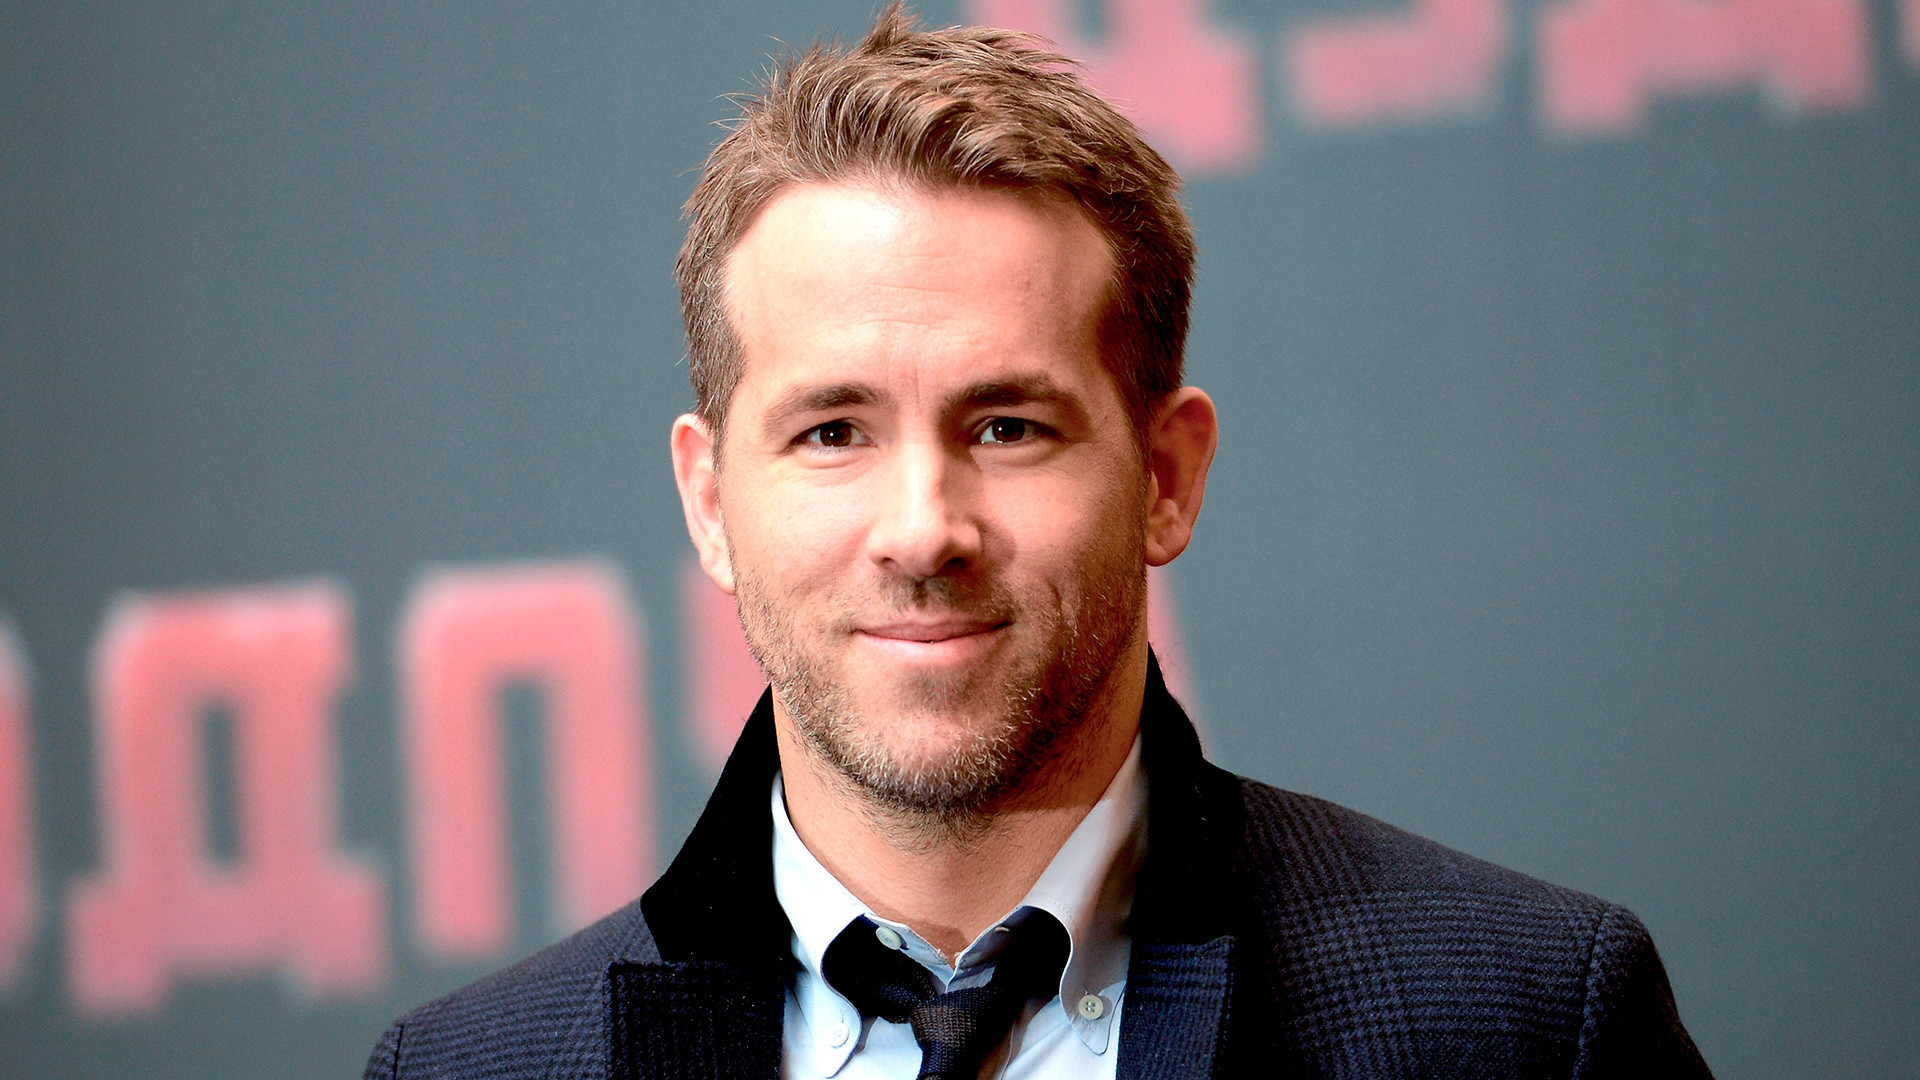 Ryan Reynolds at the Ritz Carlton Hotel in Moscow.